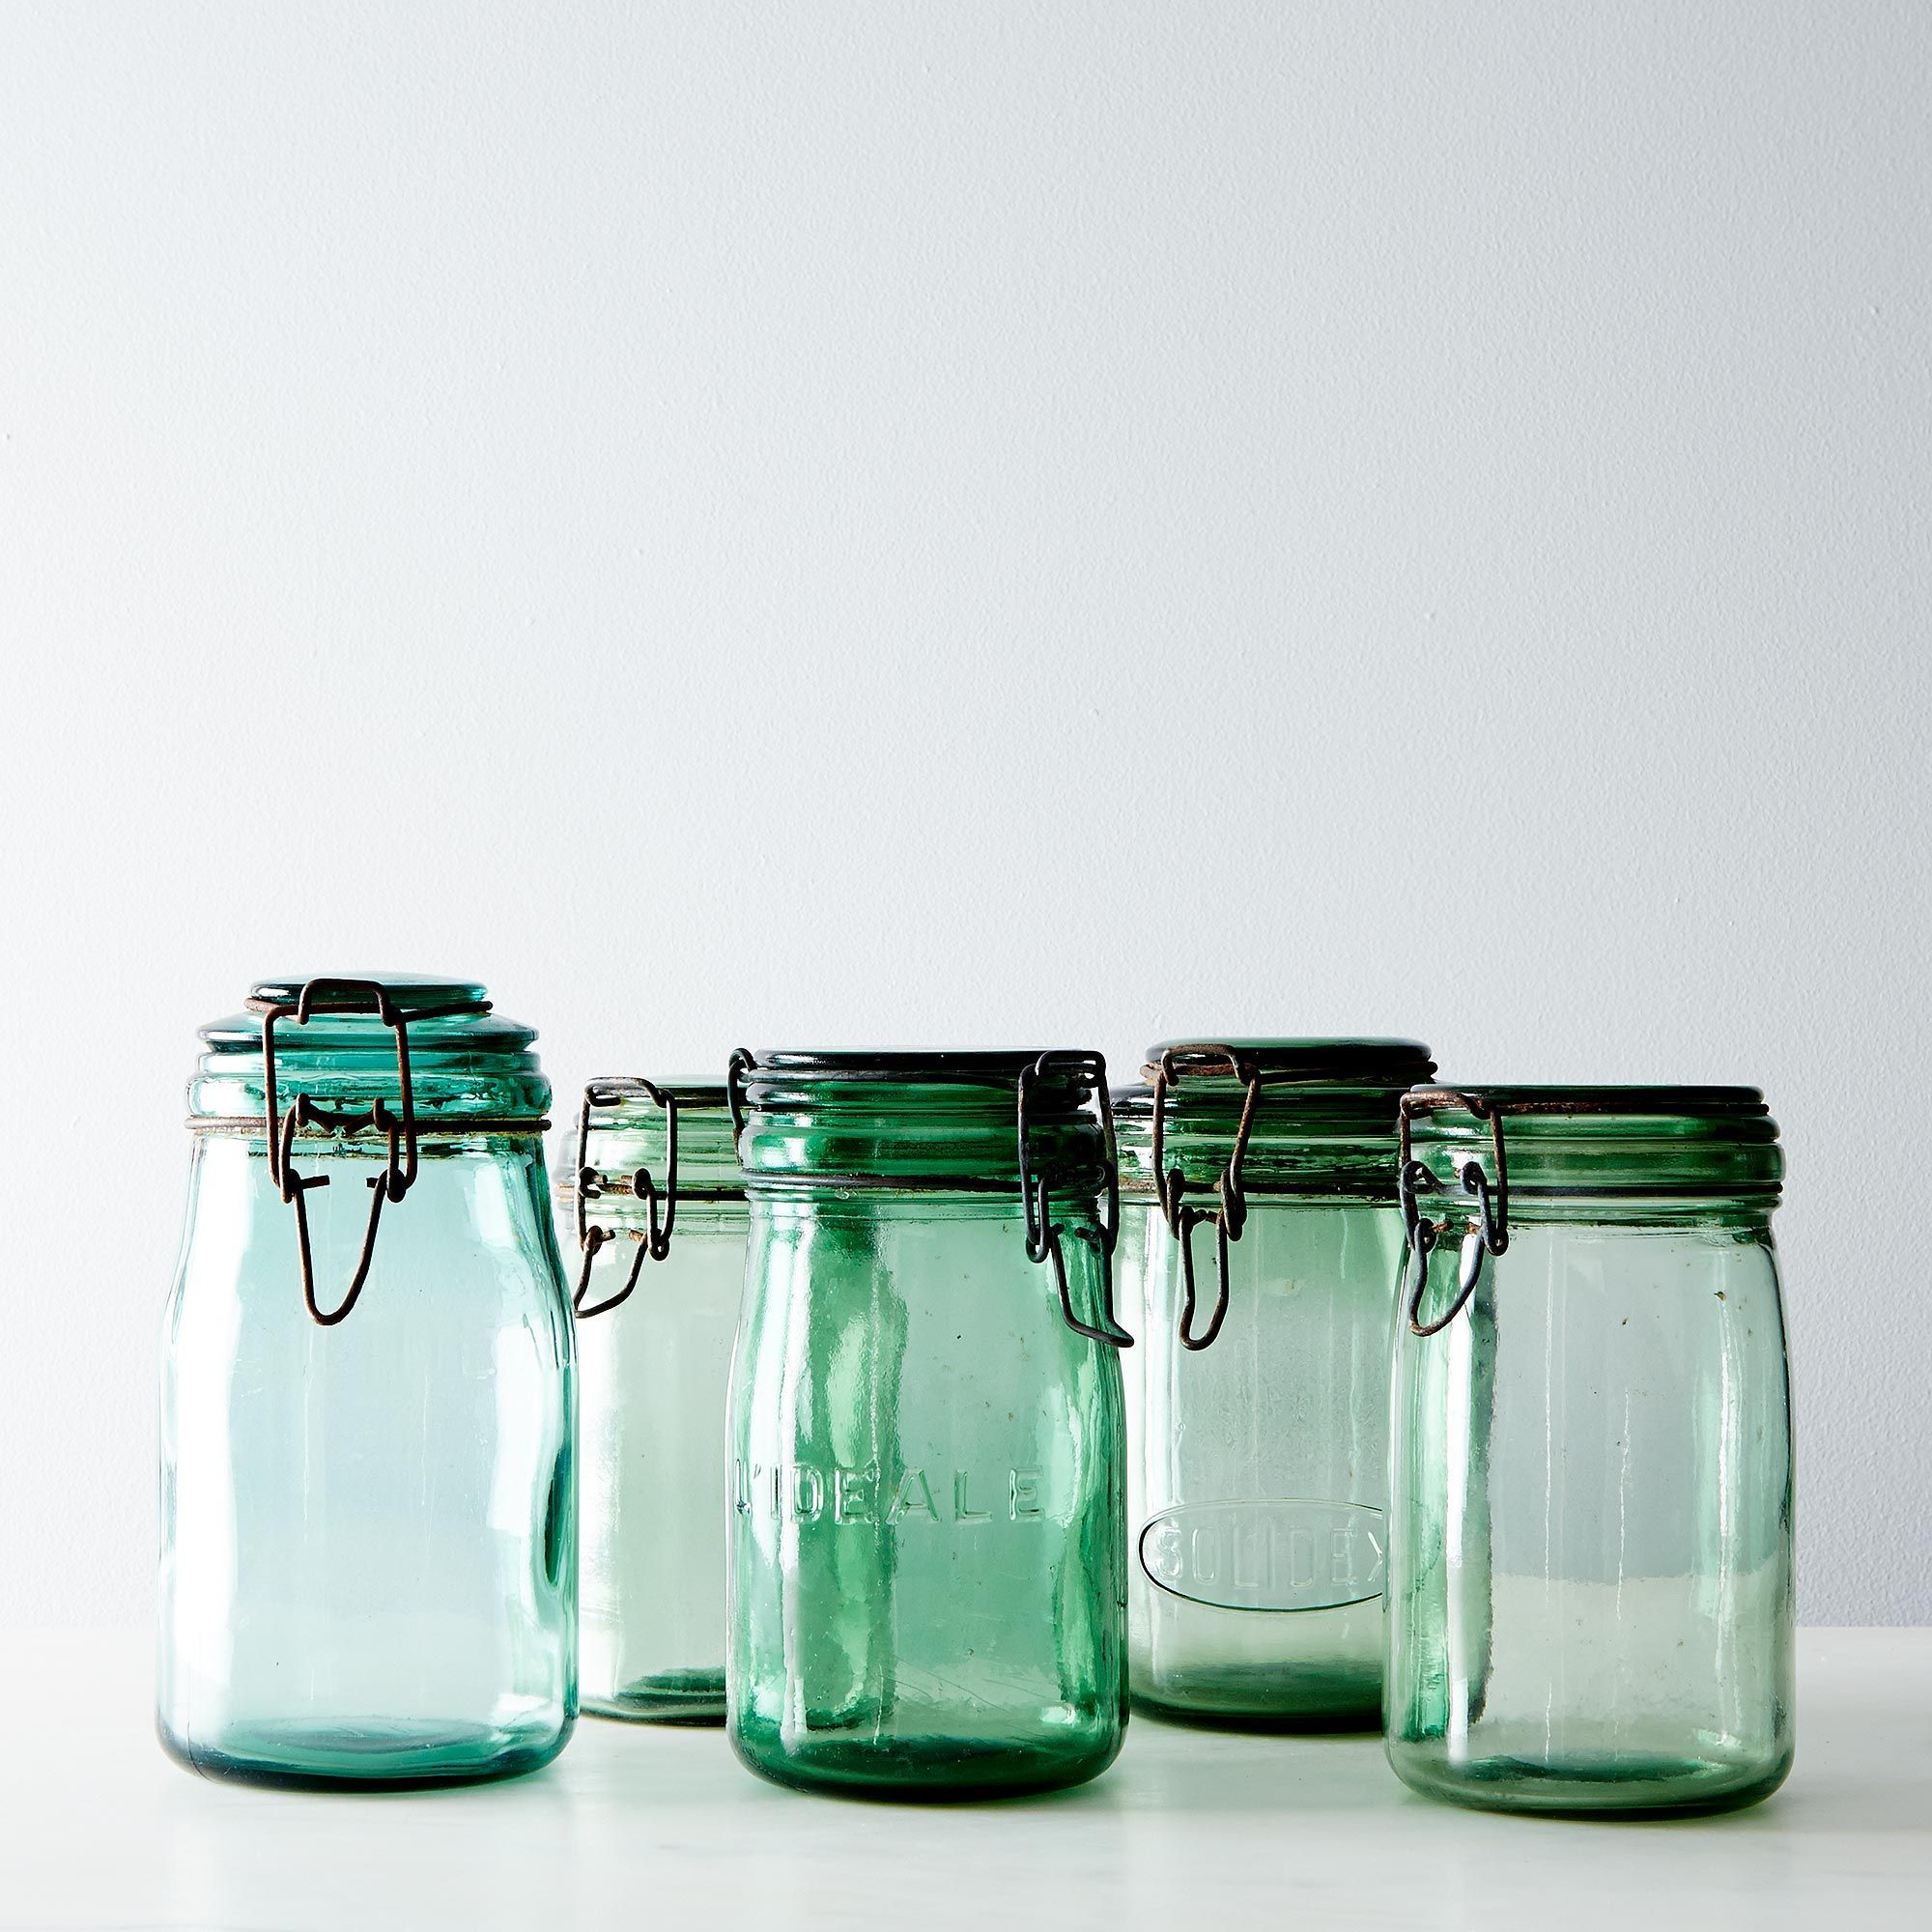 C2793e5b fe4f 4cf6 9cde 1b9e0143f898  2014 1002 elsie green designs vintage french canning jars 016